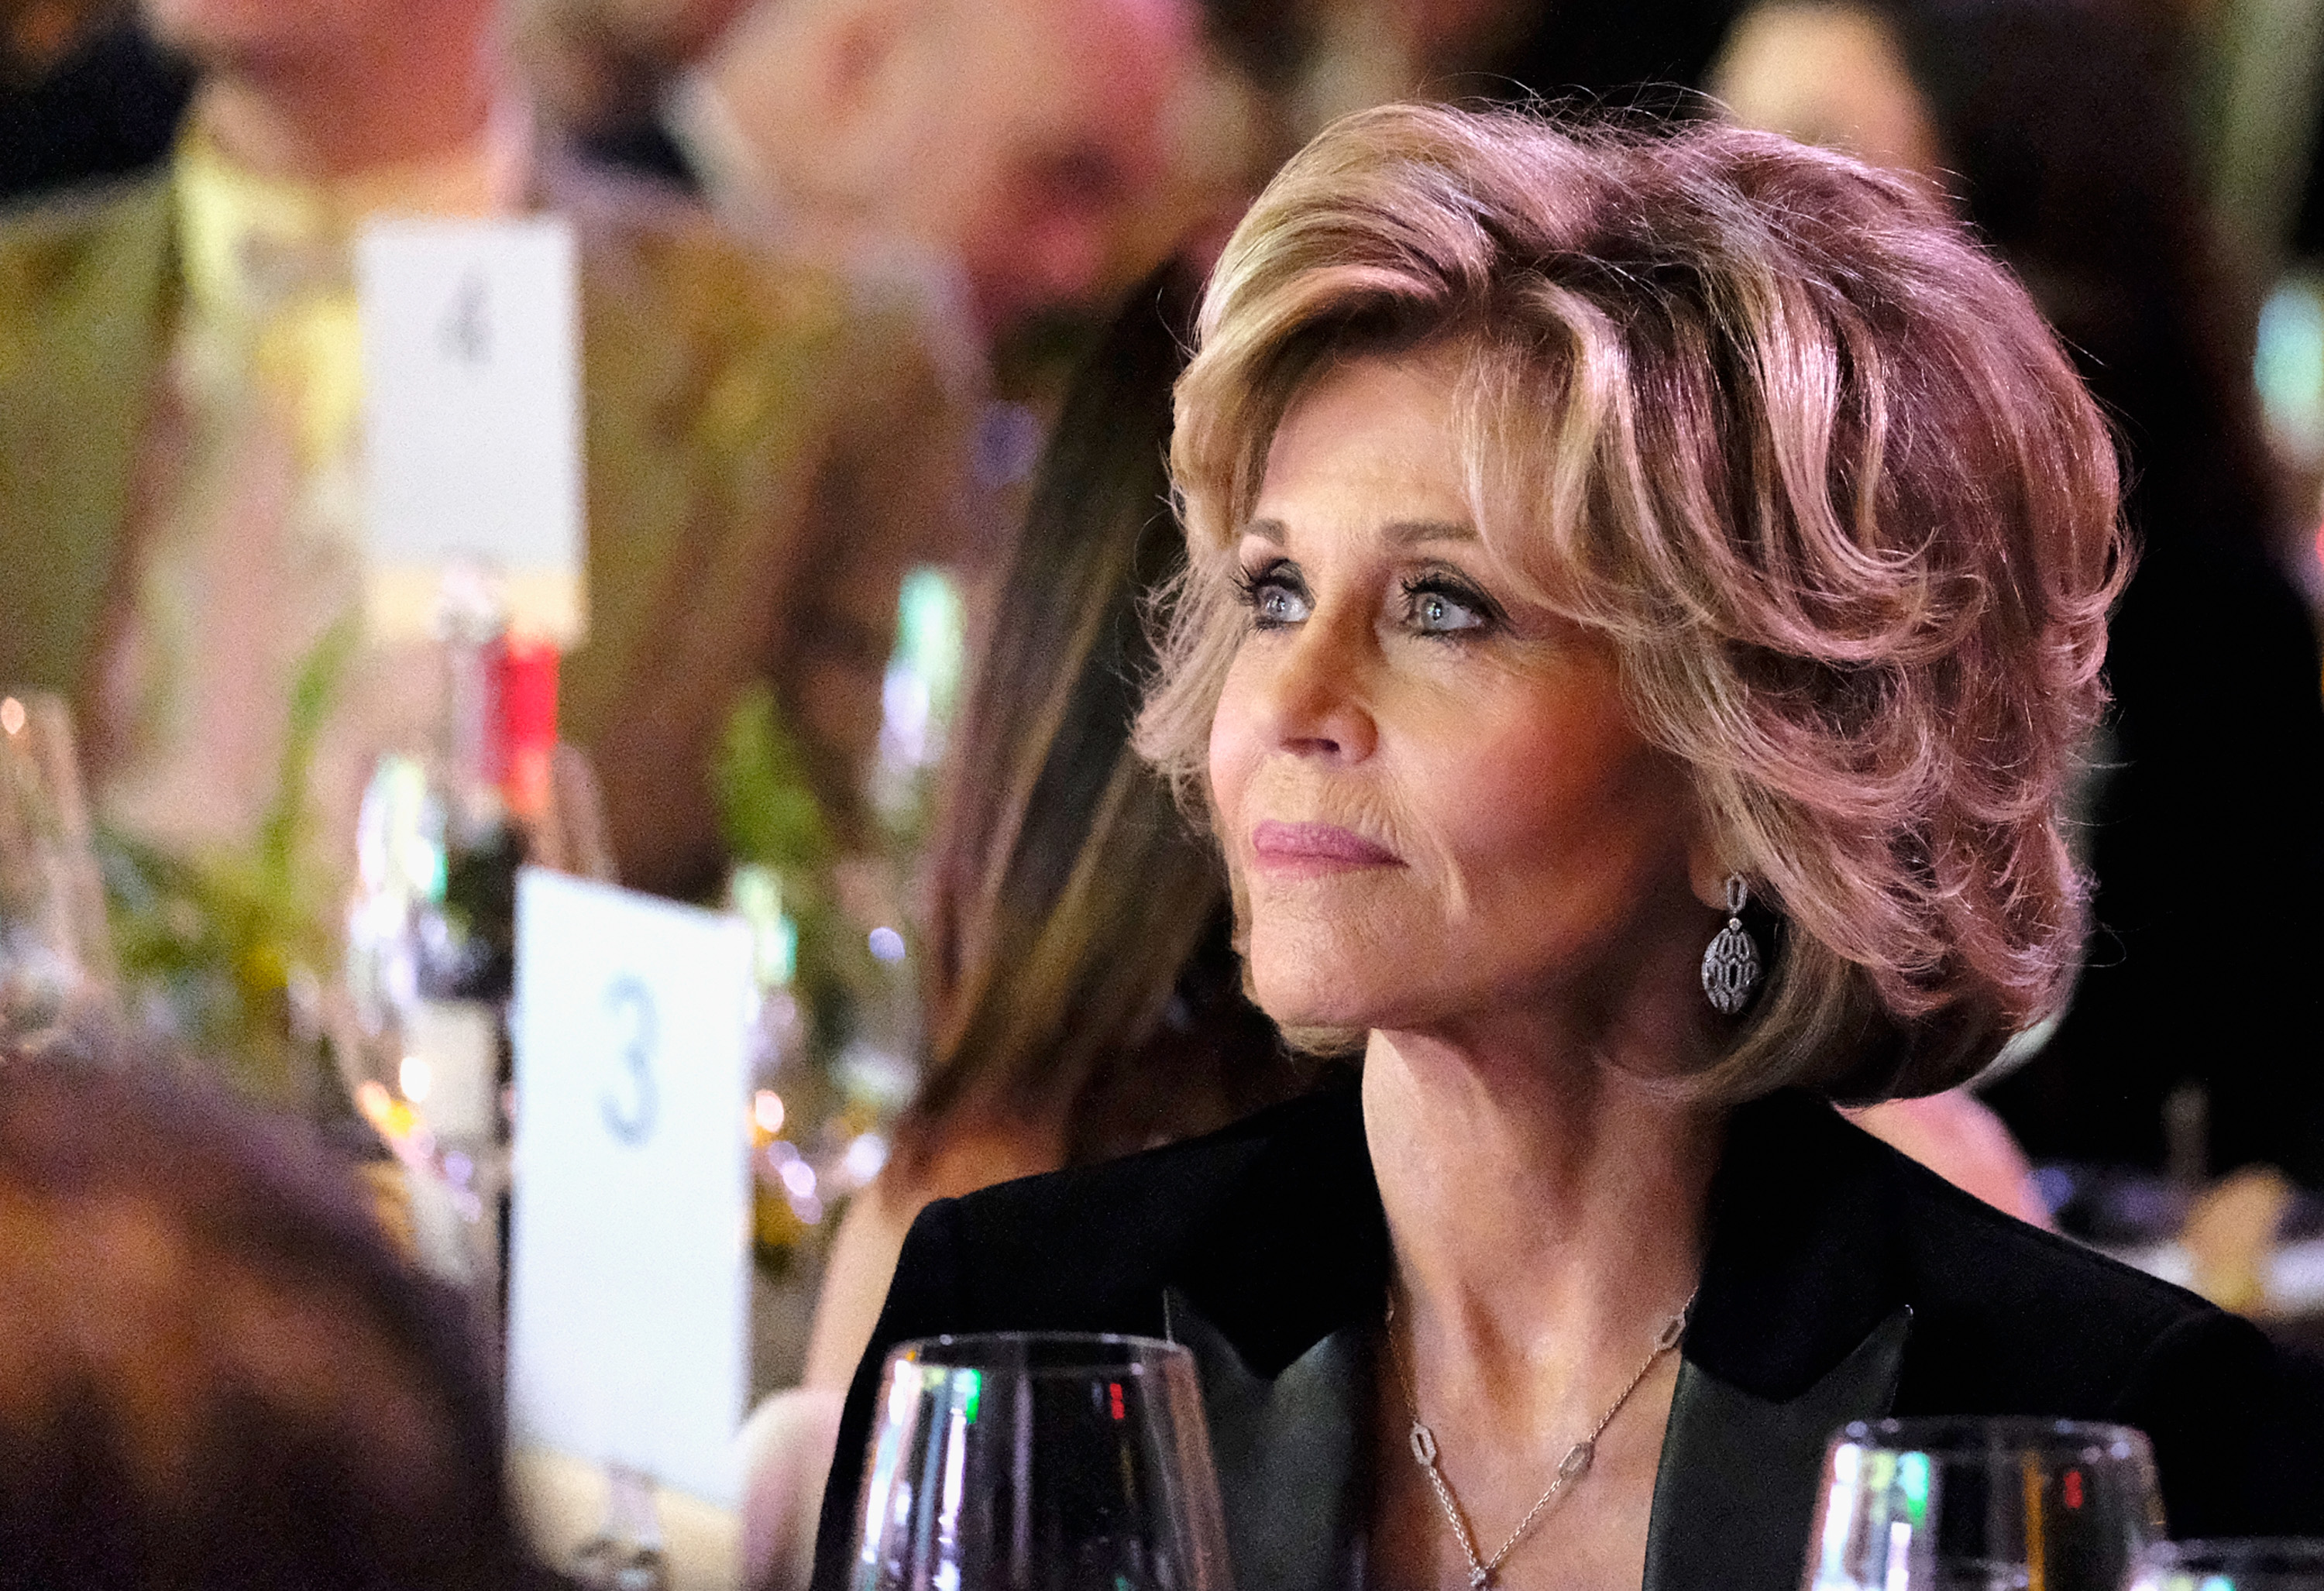 <p>Jane Fonda is a legendary actress and beauty. And neither of those things is diminishing despite the fact she's now 79 years old. Correct. The woman is 79. And she's as gorgeous as ever, and more importantly bursting with enthusiasm and humour.</p> <p>Jane, a two-time Academy Award winner, was this week filming episodes of the sit-com Grace and Frankie alongside former Friends' star Lisa Kudrow and was undeniably stunning. And why not?</p> <p>There's no rule that states women are beautiful during a certain period of life only. It's pretty clear (thanks to Jane and swag of others) that women can be breathtakingly lovely at any stage of life.</p> <p> Do our appearances change as we age? Of course they do, for none of us is Dorian Gray. That said, we can remain gorgeous if we carry ourselves with a bit of style, lead a healthy lifestyle, remind ourselves daily that we're killing it and find a style we love and rock it 24-7. That is really all it takes.</p> <p> You might think Jane is just an anomaly, some kind of freak of nature, but she's far from the only woman who is becoming more beautiful as the years go by. Click through our pic album and you'll very quickly see what we mean.<br /> <br /> </p>